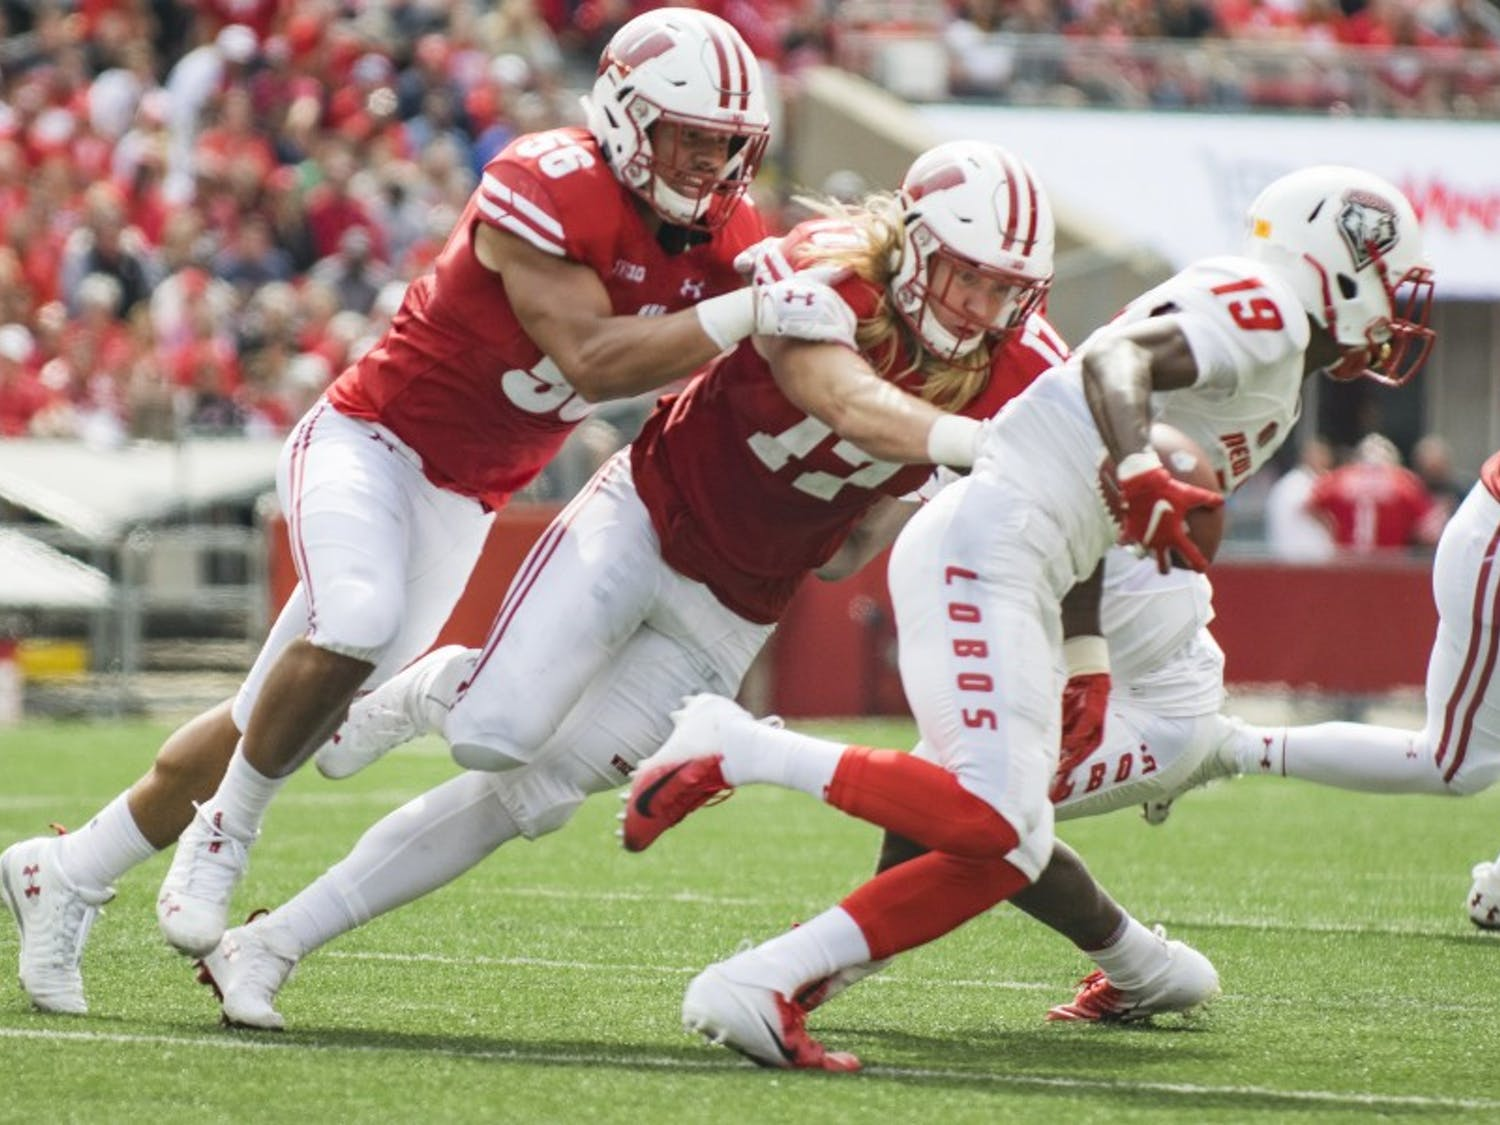 After an injury ended Zack Baun's 2017 season before it started and a disappointing 2018 season, the senior linebacker has played a central role in UW's top-ranked defense in 2019.